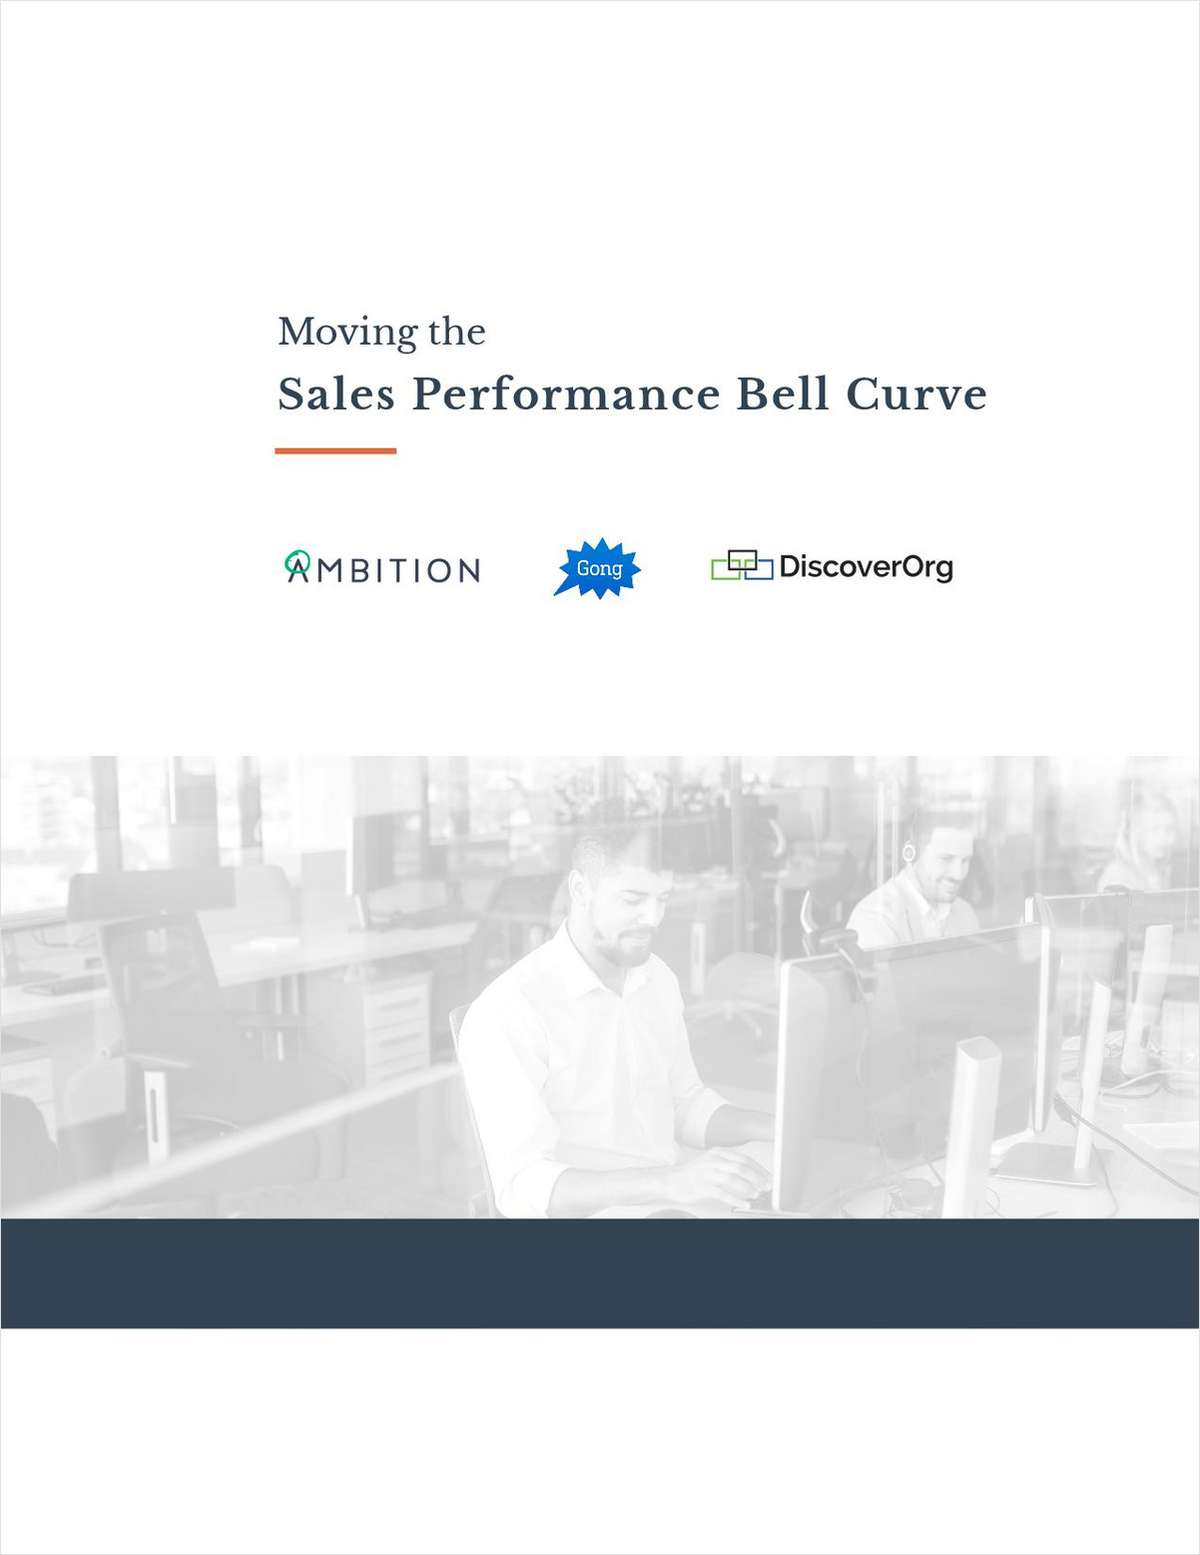 Moving the Sales Performance Bell Curve